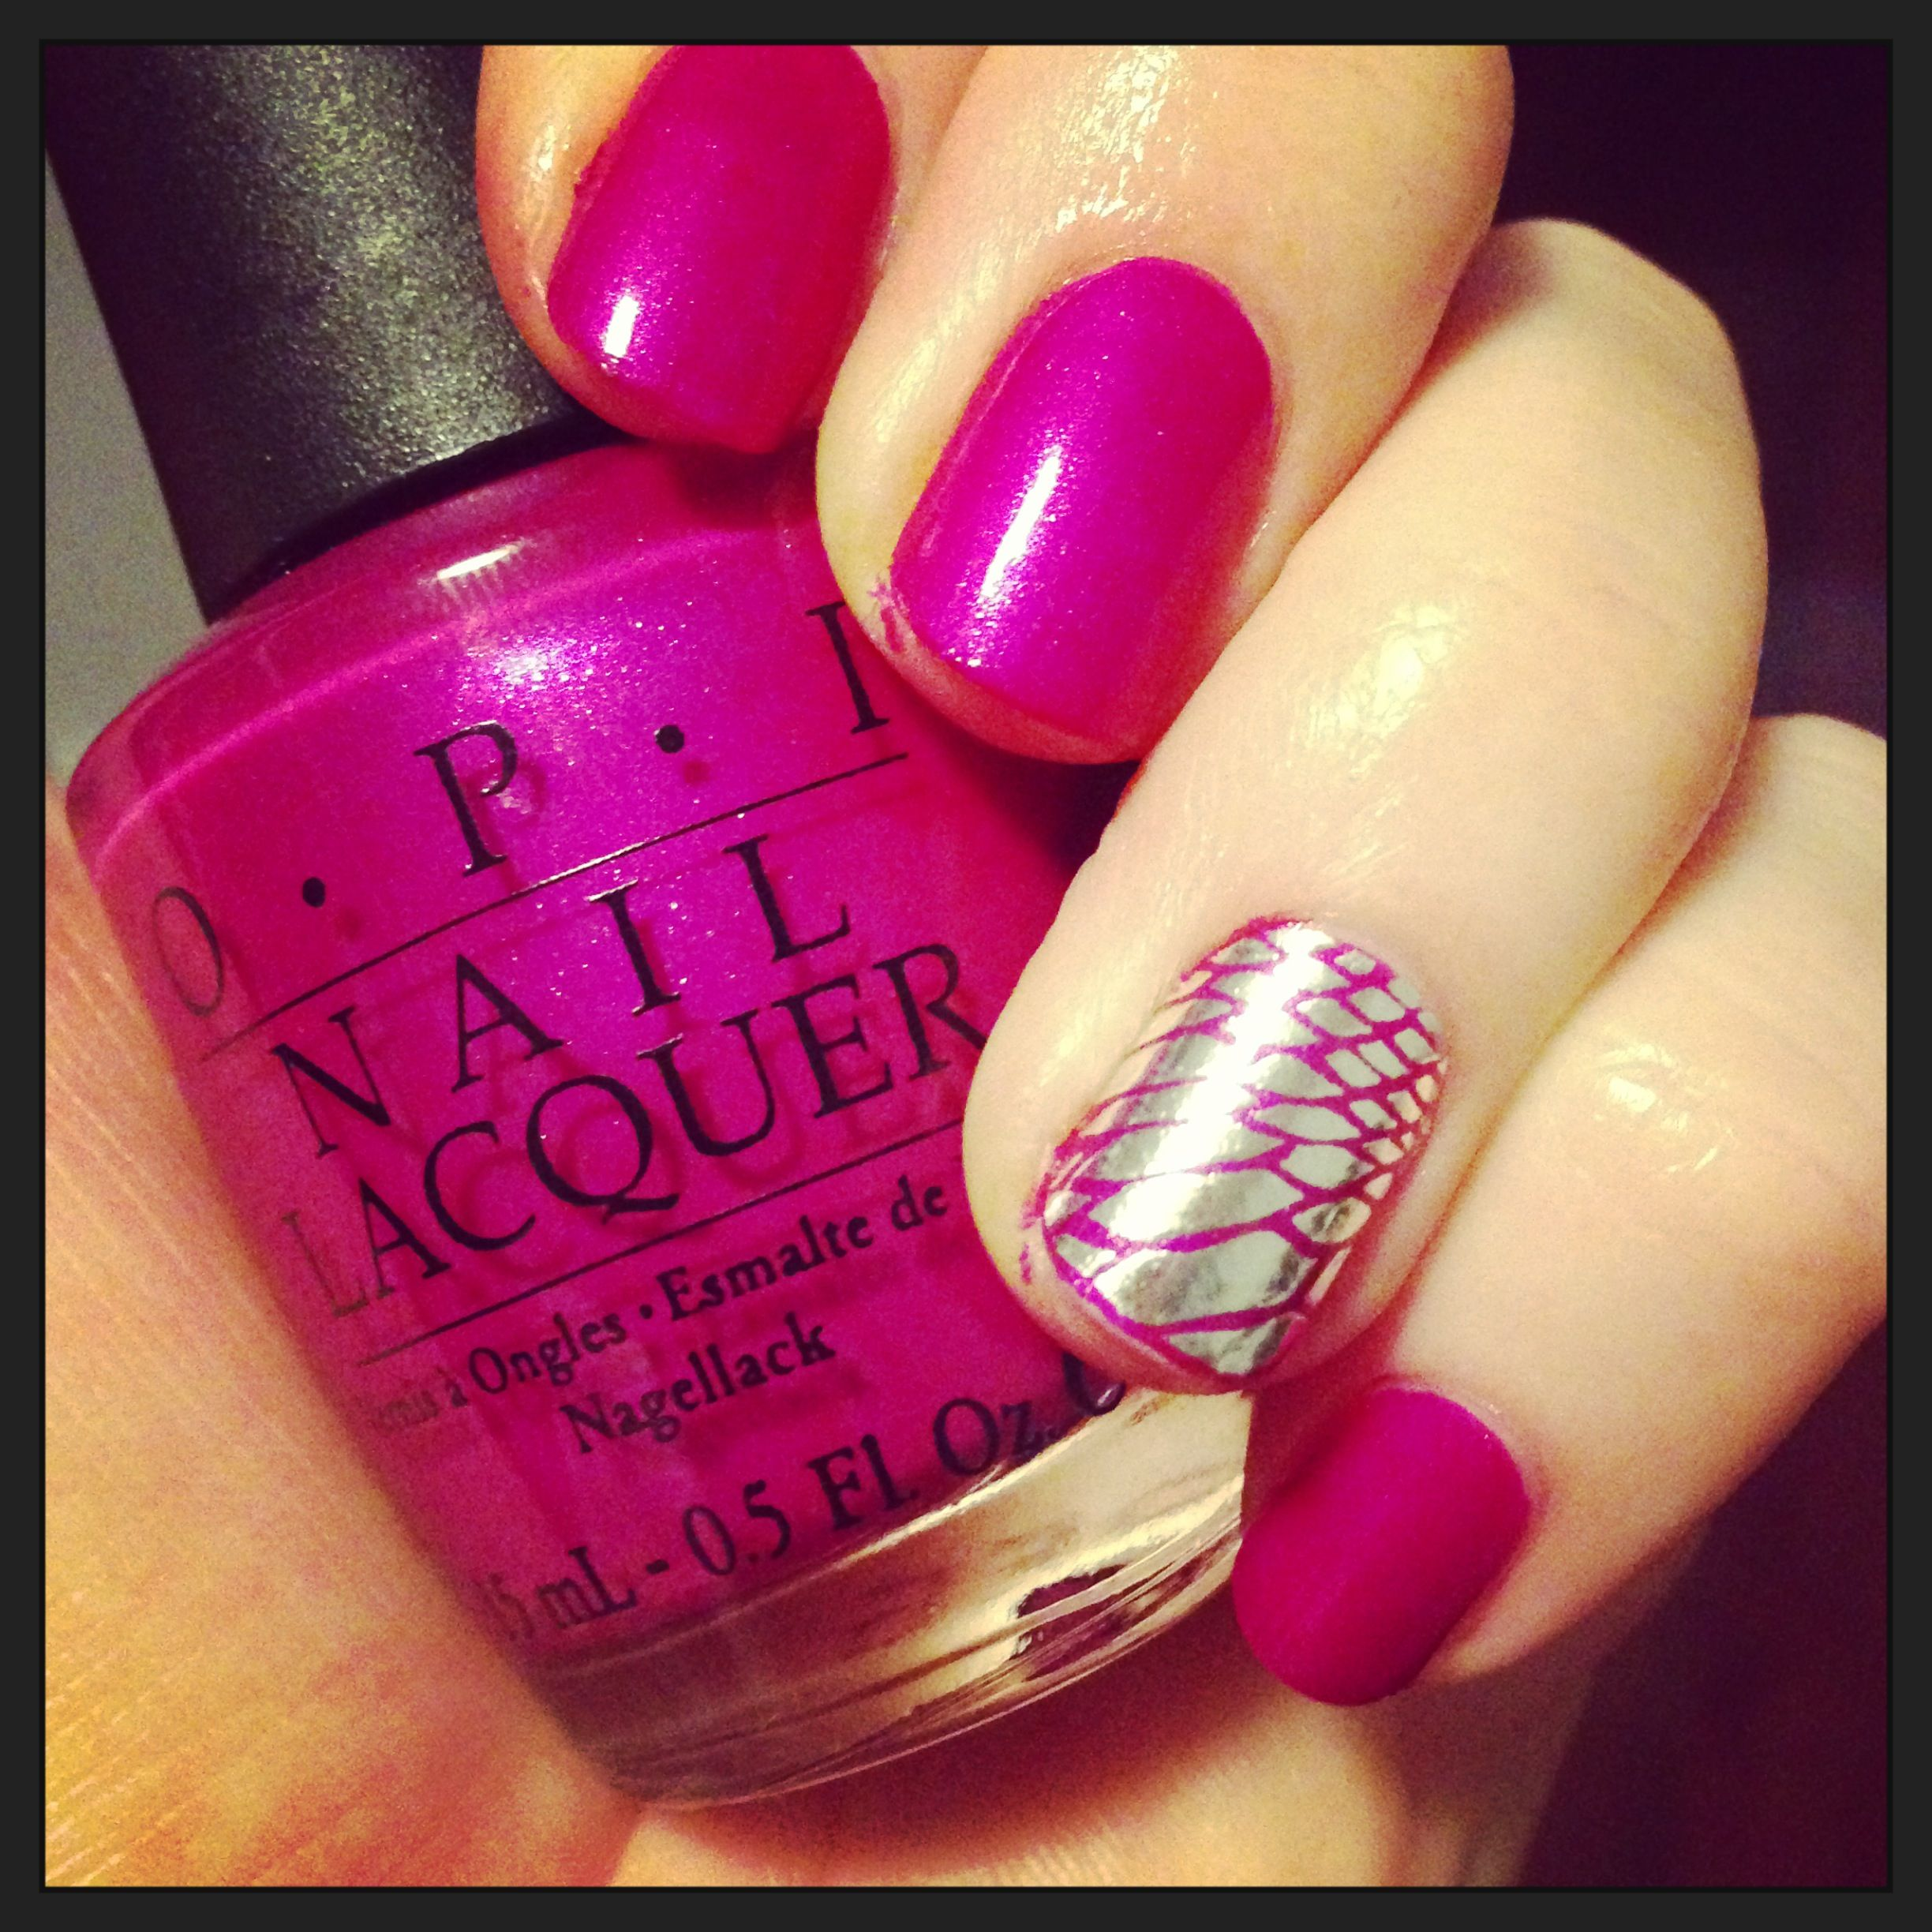 Flashbulb Fuschia by OPI and Essie nail apps. Nail art FTW!